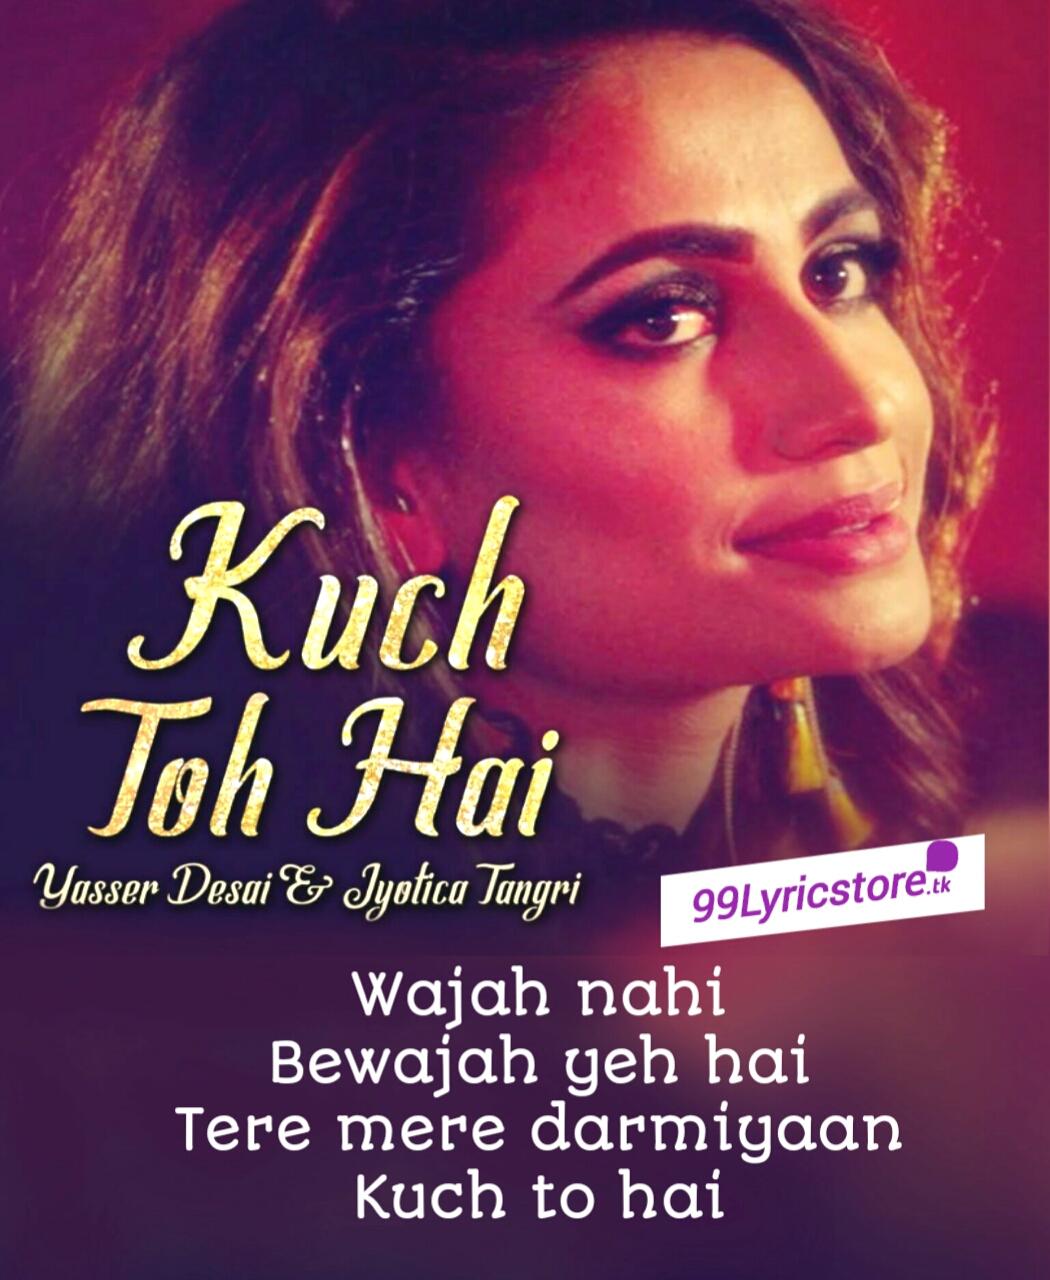 Kuch to hai Lyrics Yasser Desai , Kuch toh hai Lyrics Jyotica Tangari  , Yasser Song lyrics Kuch toh hai , Jyotica Tangari Song Lyrics Kuch toh hai , Latest Hindi Song Lyrics 2019 , Kuch to hai Yasser Desai & Jyotica Tangari Song Lyrics , Kuch to hai song lyrics zee music company